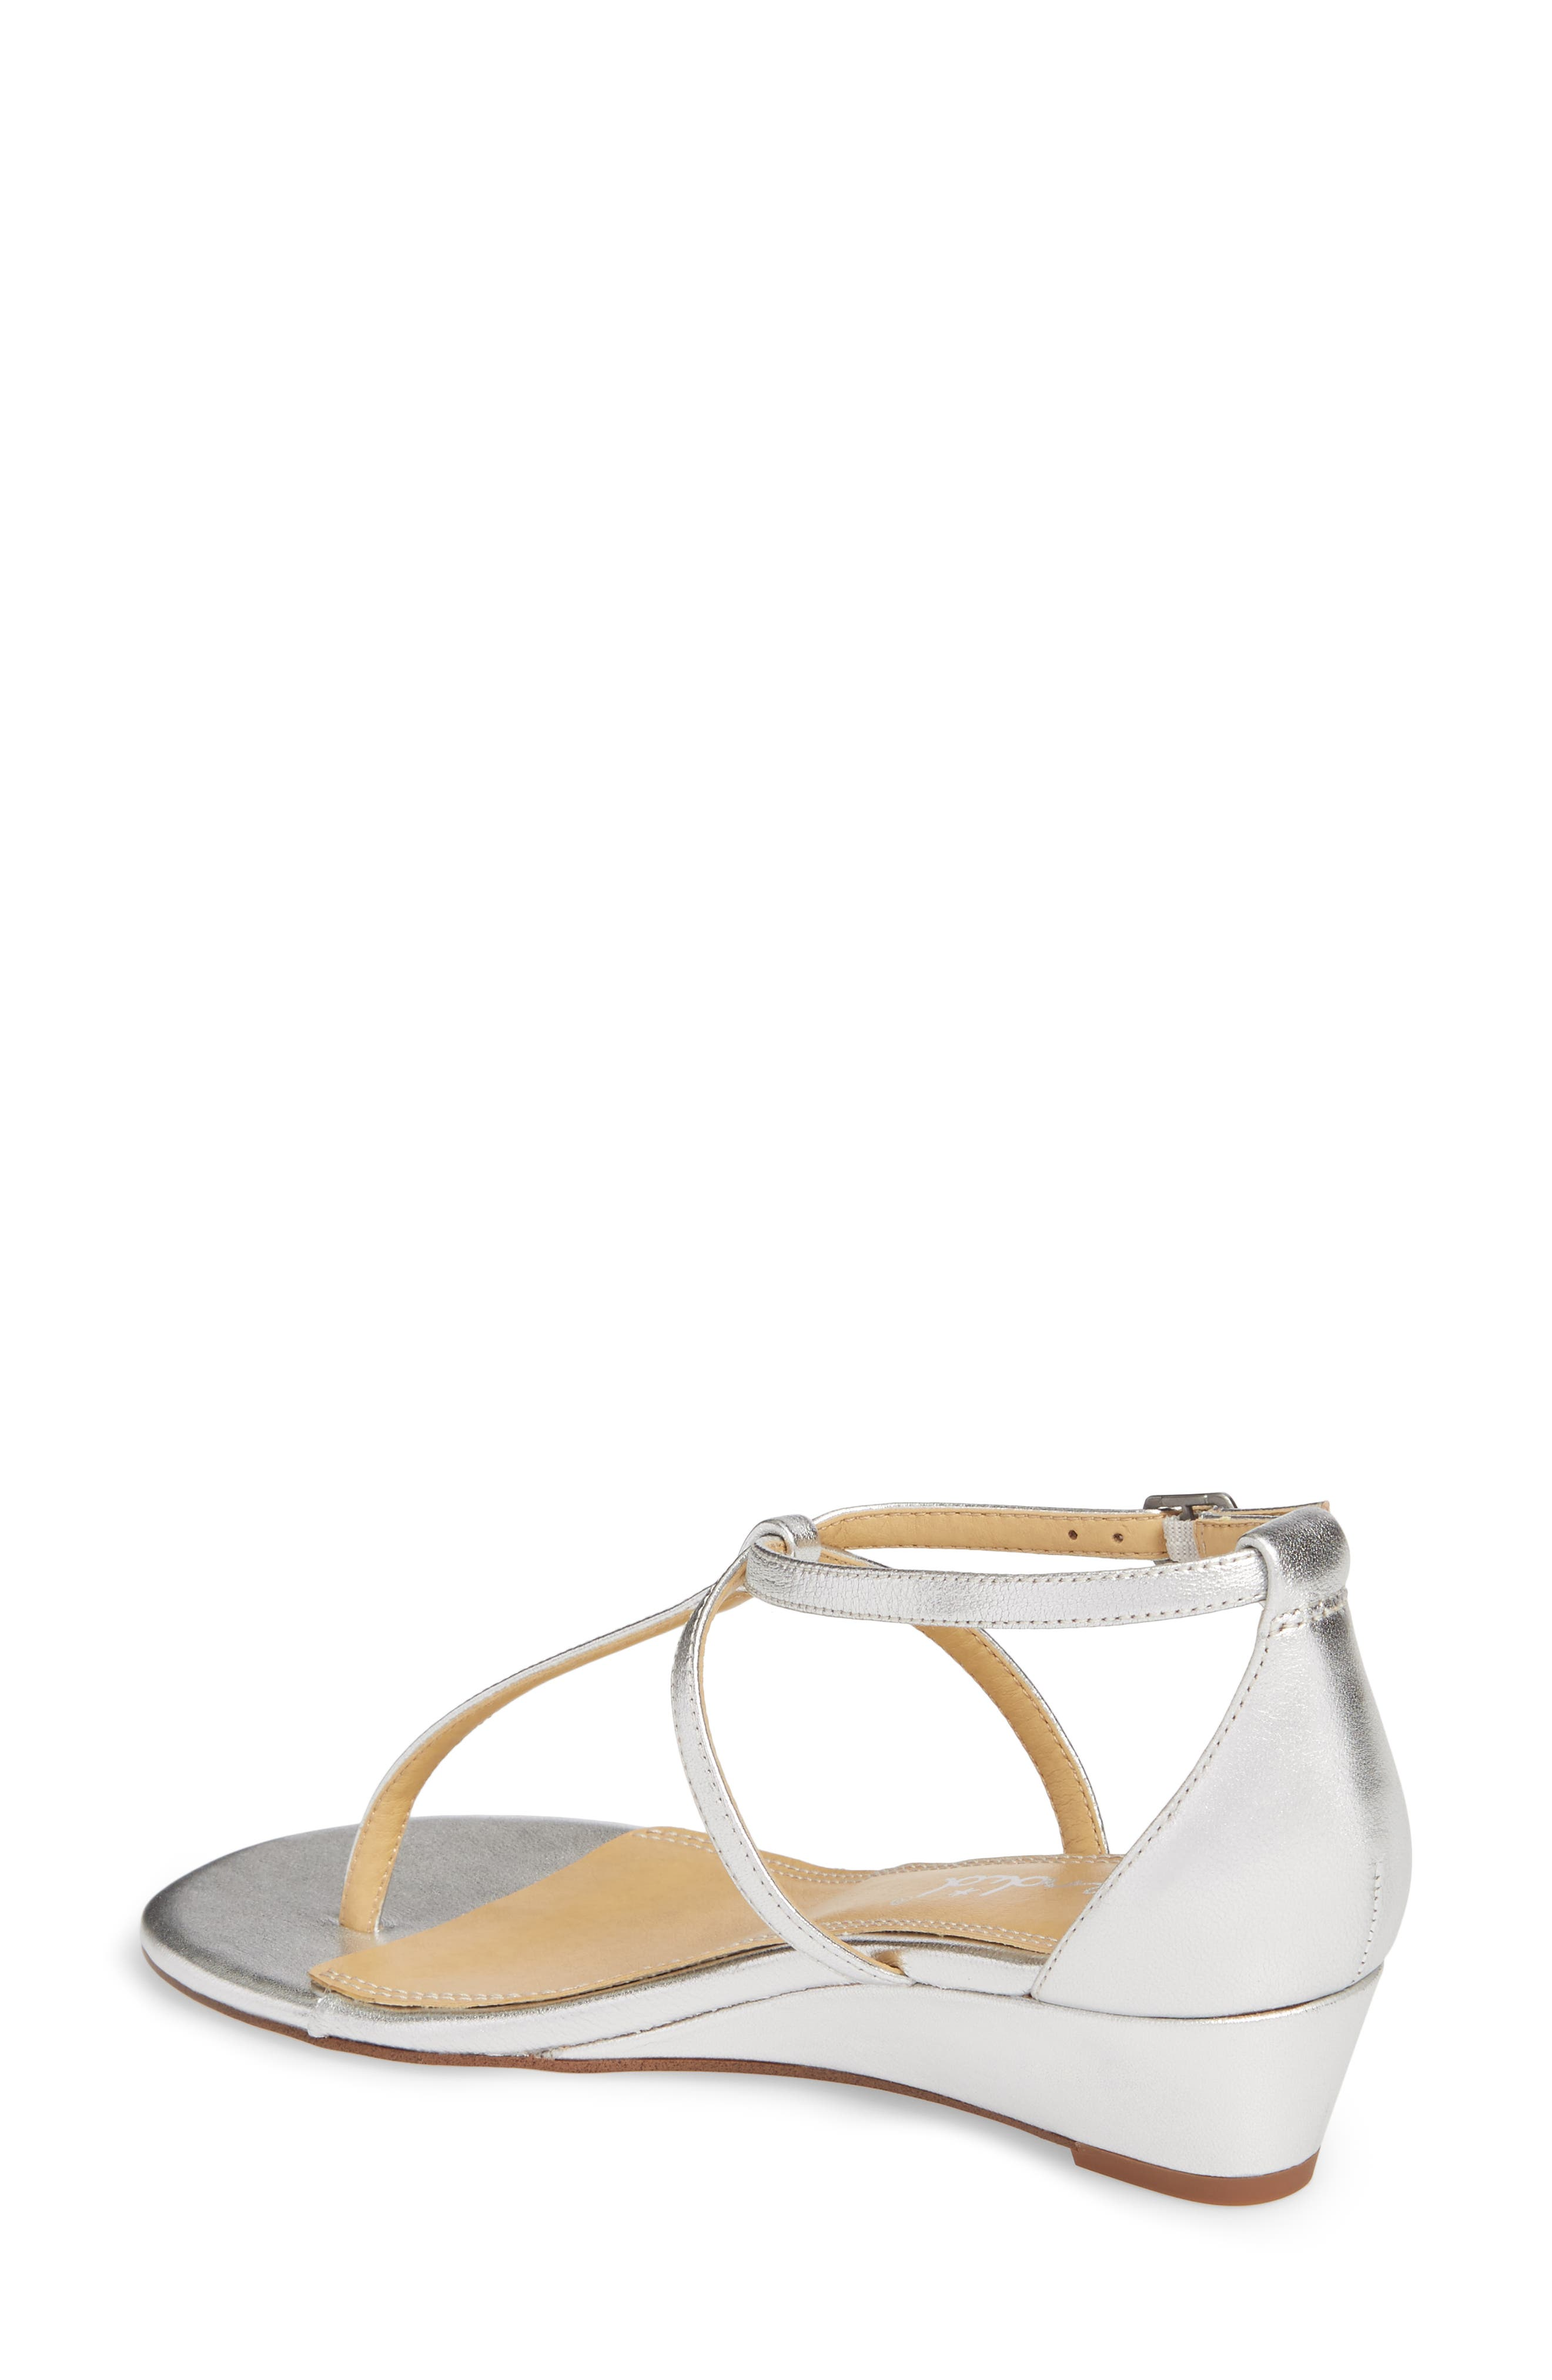 Bryce T-Strap Wedge Sandal,                             Alternate thumbnail 8, color,